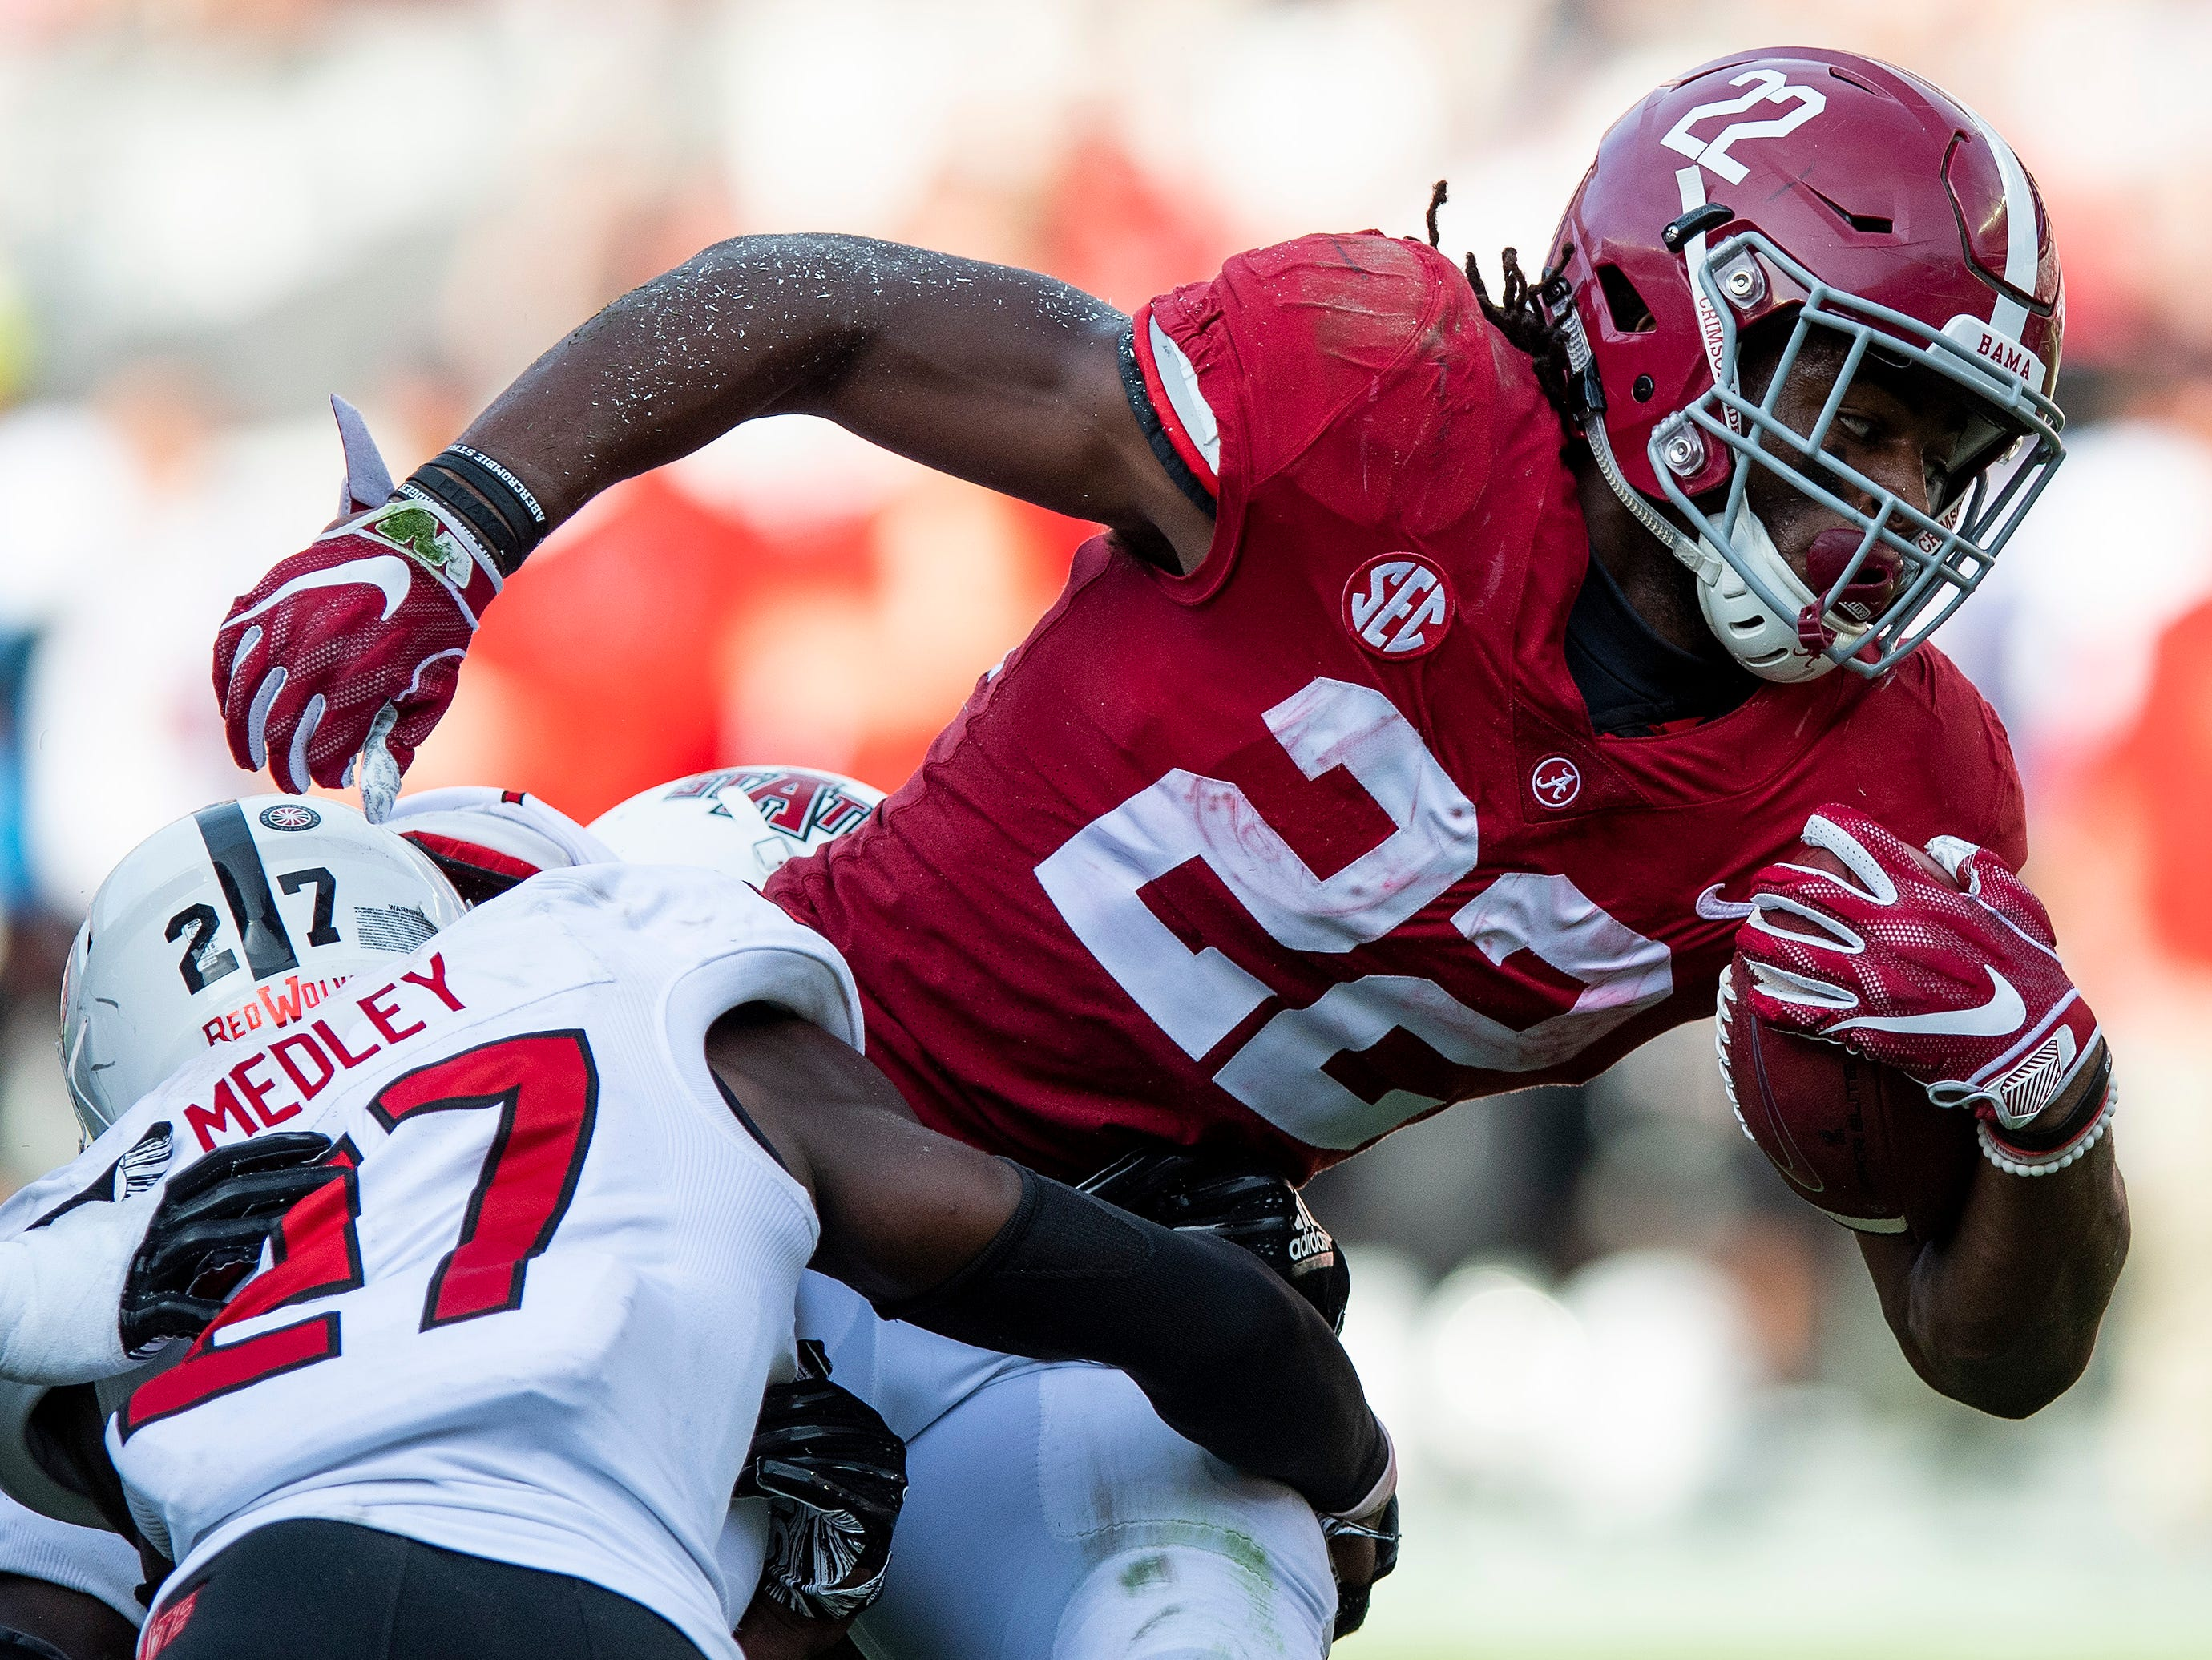 Alabama running back Najee Harris (22) is stopped by Arkansas State defensive back Demari Medley (27) in second half action at Bryant Denny Stadium in Tuscaloosa, Ala., on Saturday September 8, 2018.